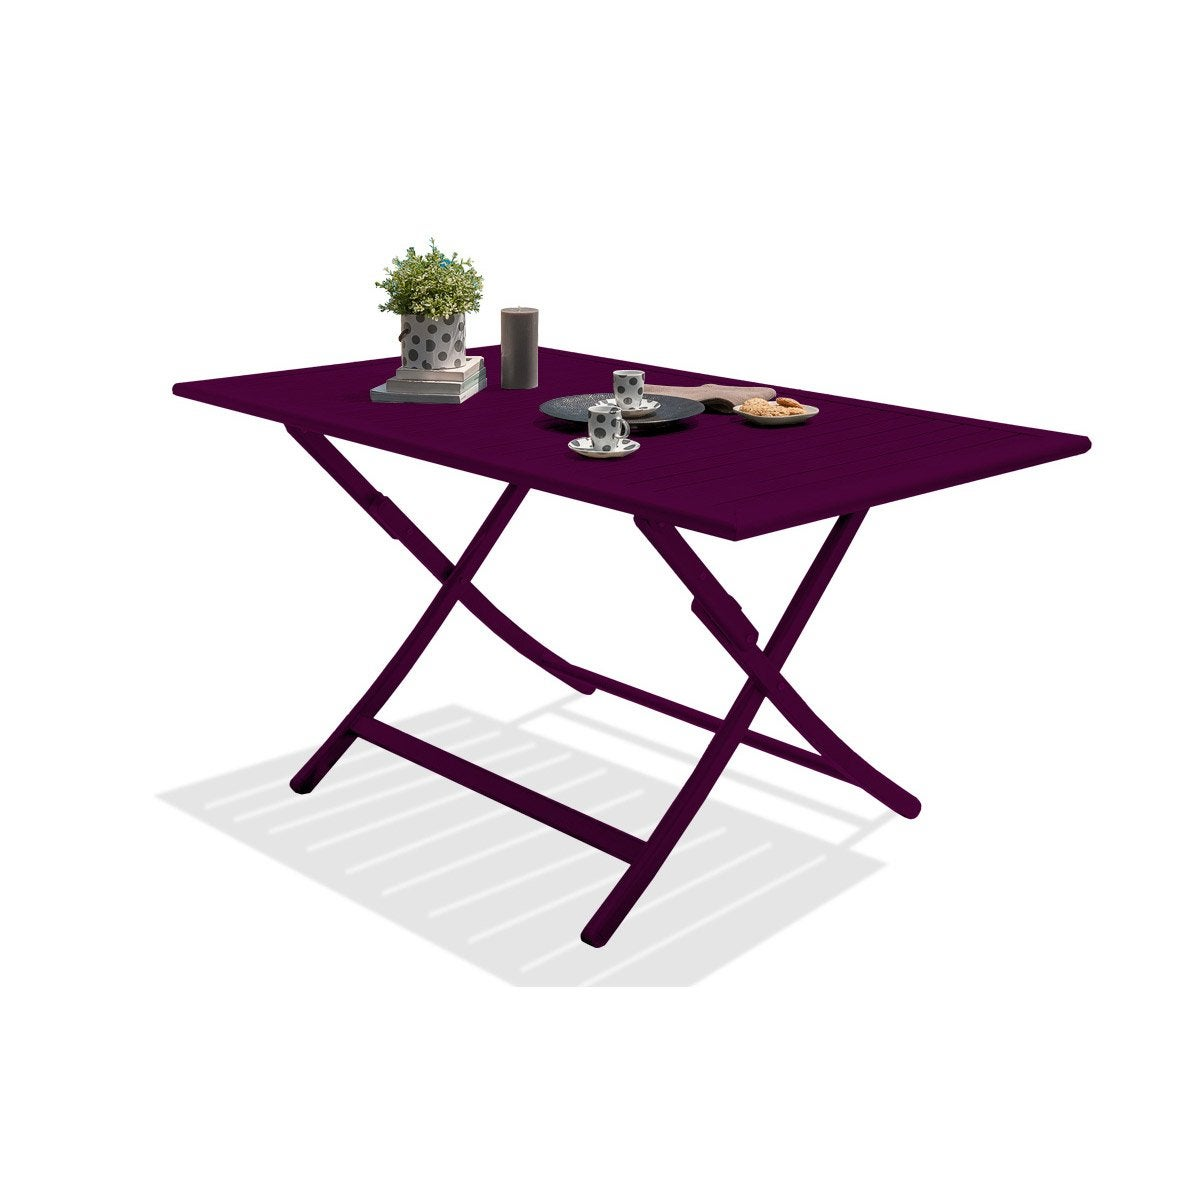 Salon De Jardin Arrondi Best Of Table De Jardin De Repas Marius Rectangulaire Aubergine 4 6 Of 37 Nouveau Salon De Jardin Arrondi